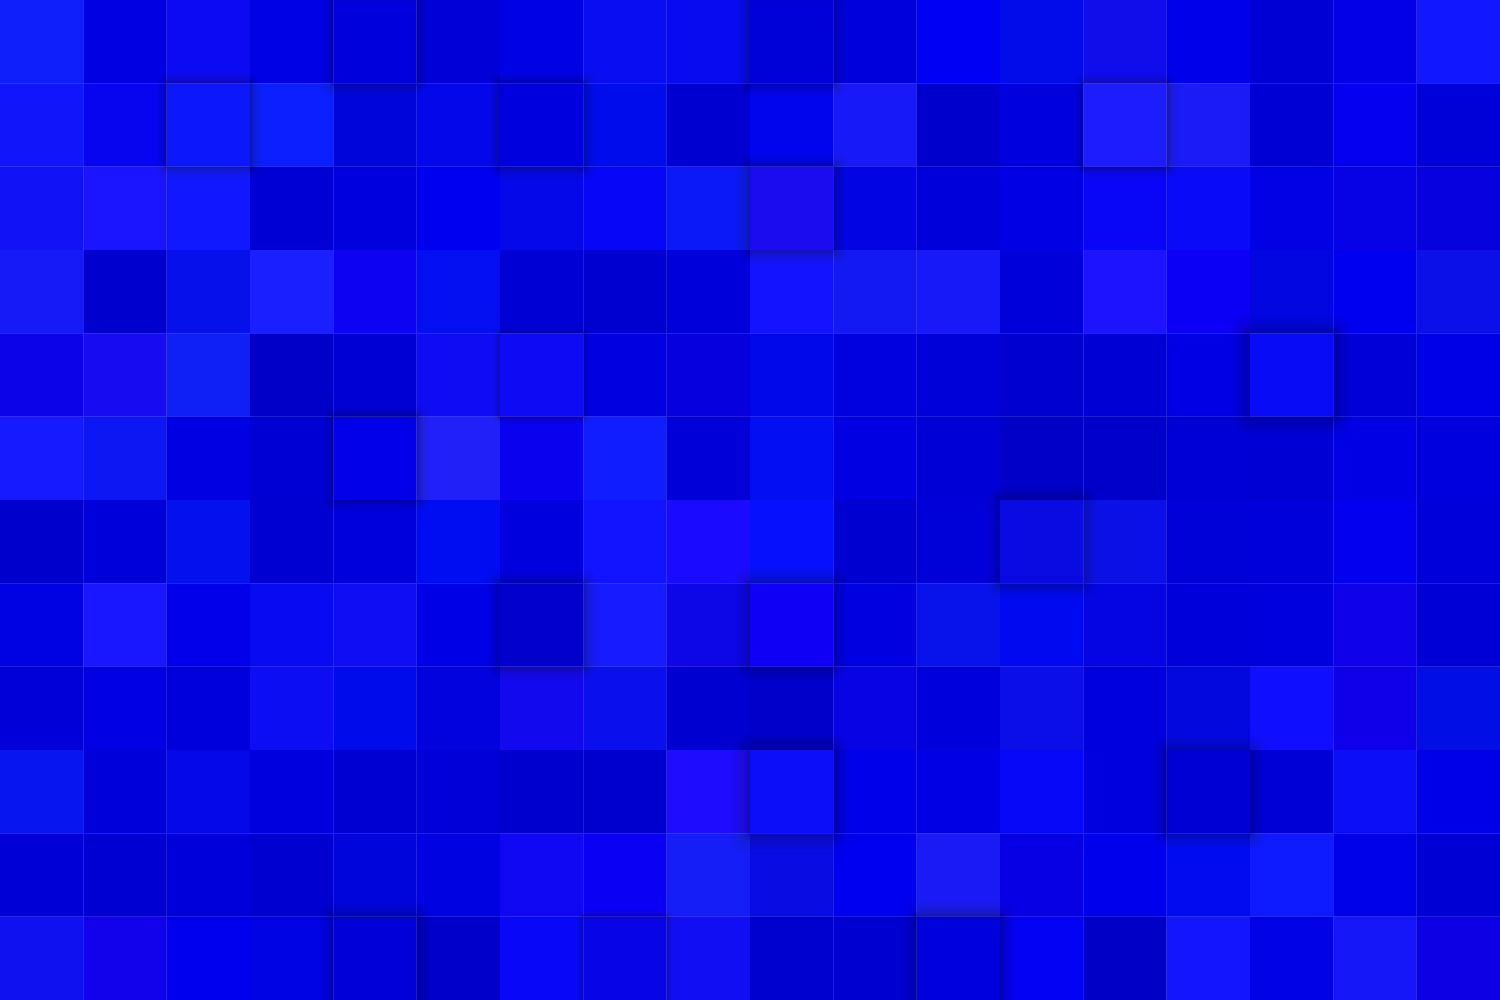 8 Blue 3D Square Backgrounds (AI, EPS, JPG 5000x5000) example image 2